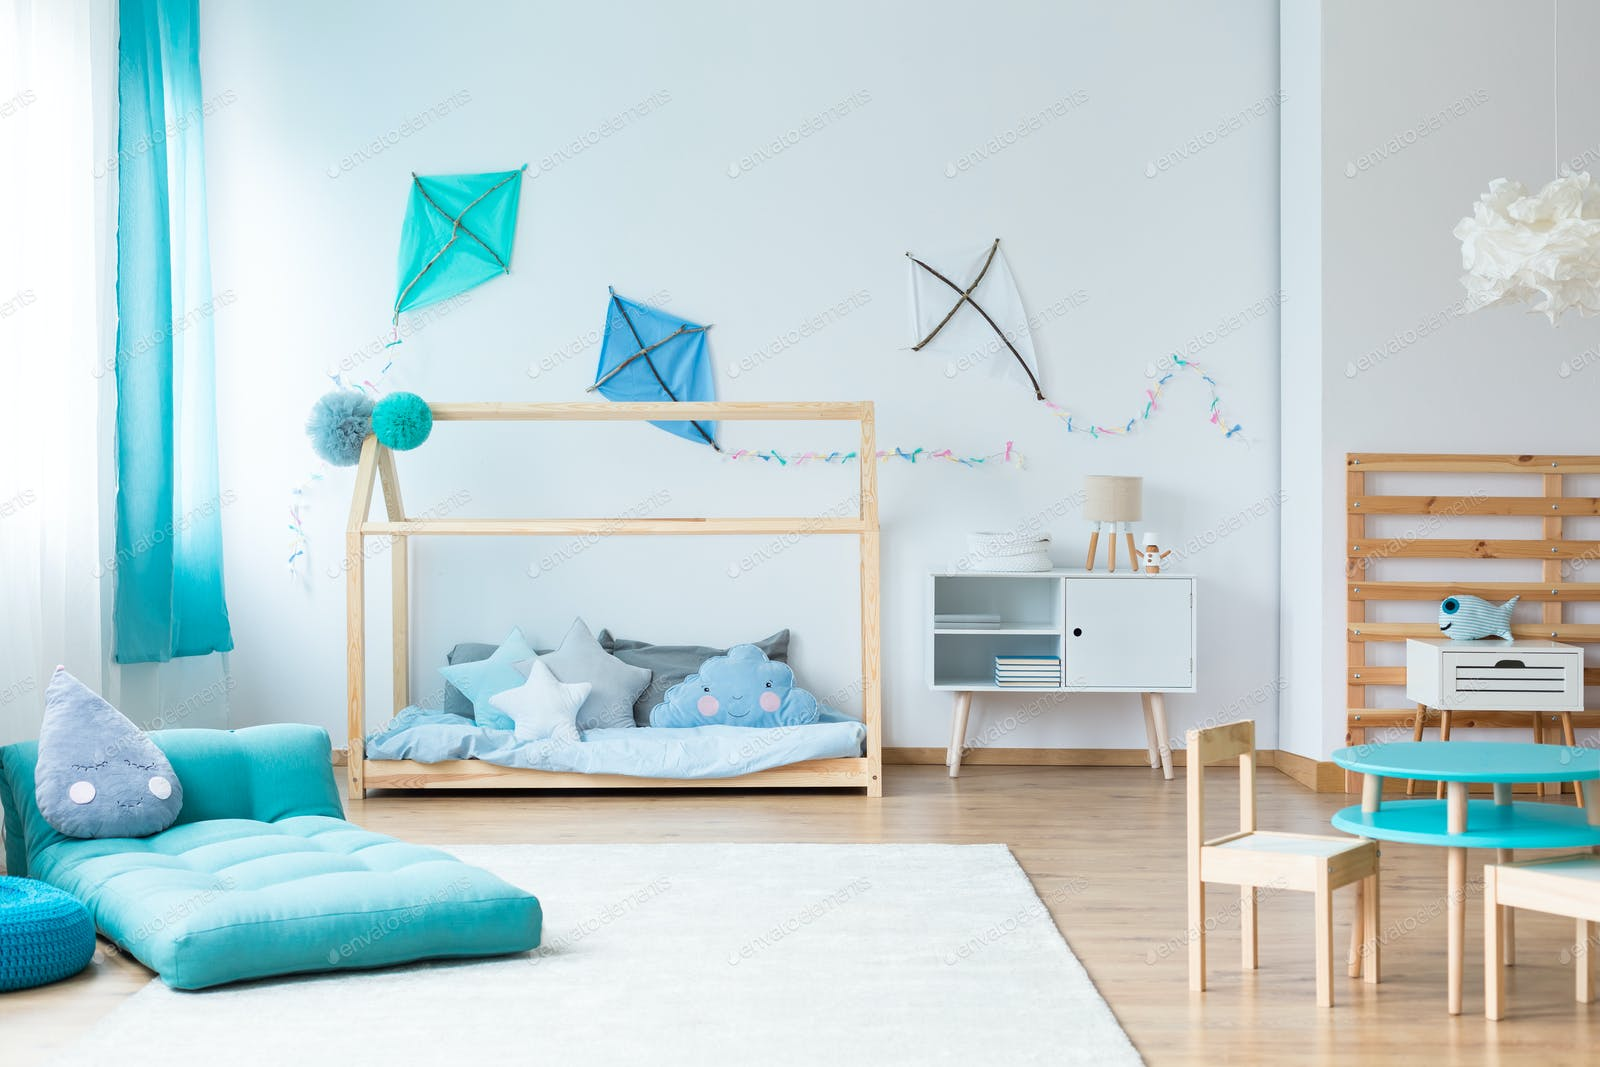 Colorful kids bedroom with kites photo by bialasiewicz on Envato Elements